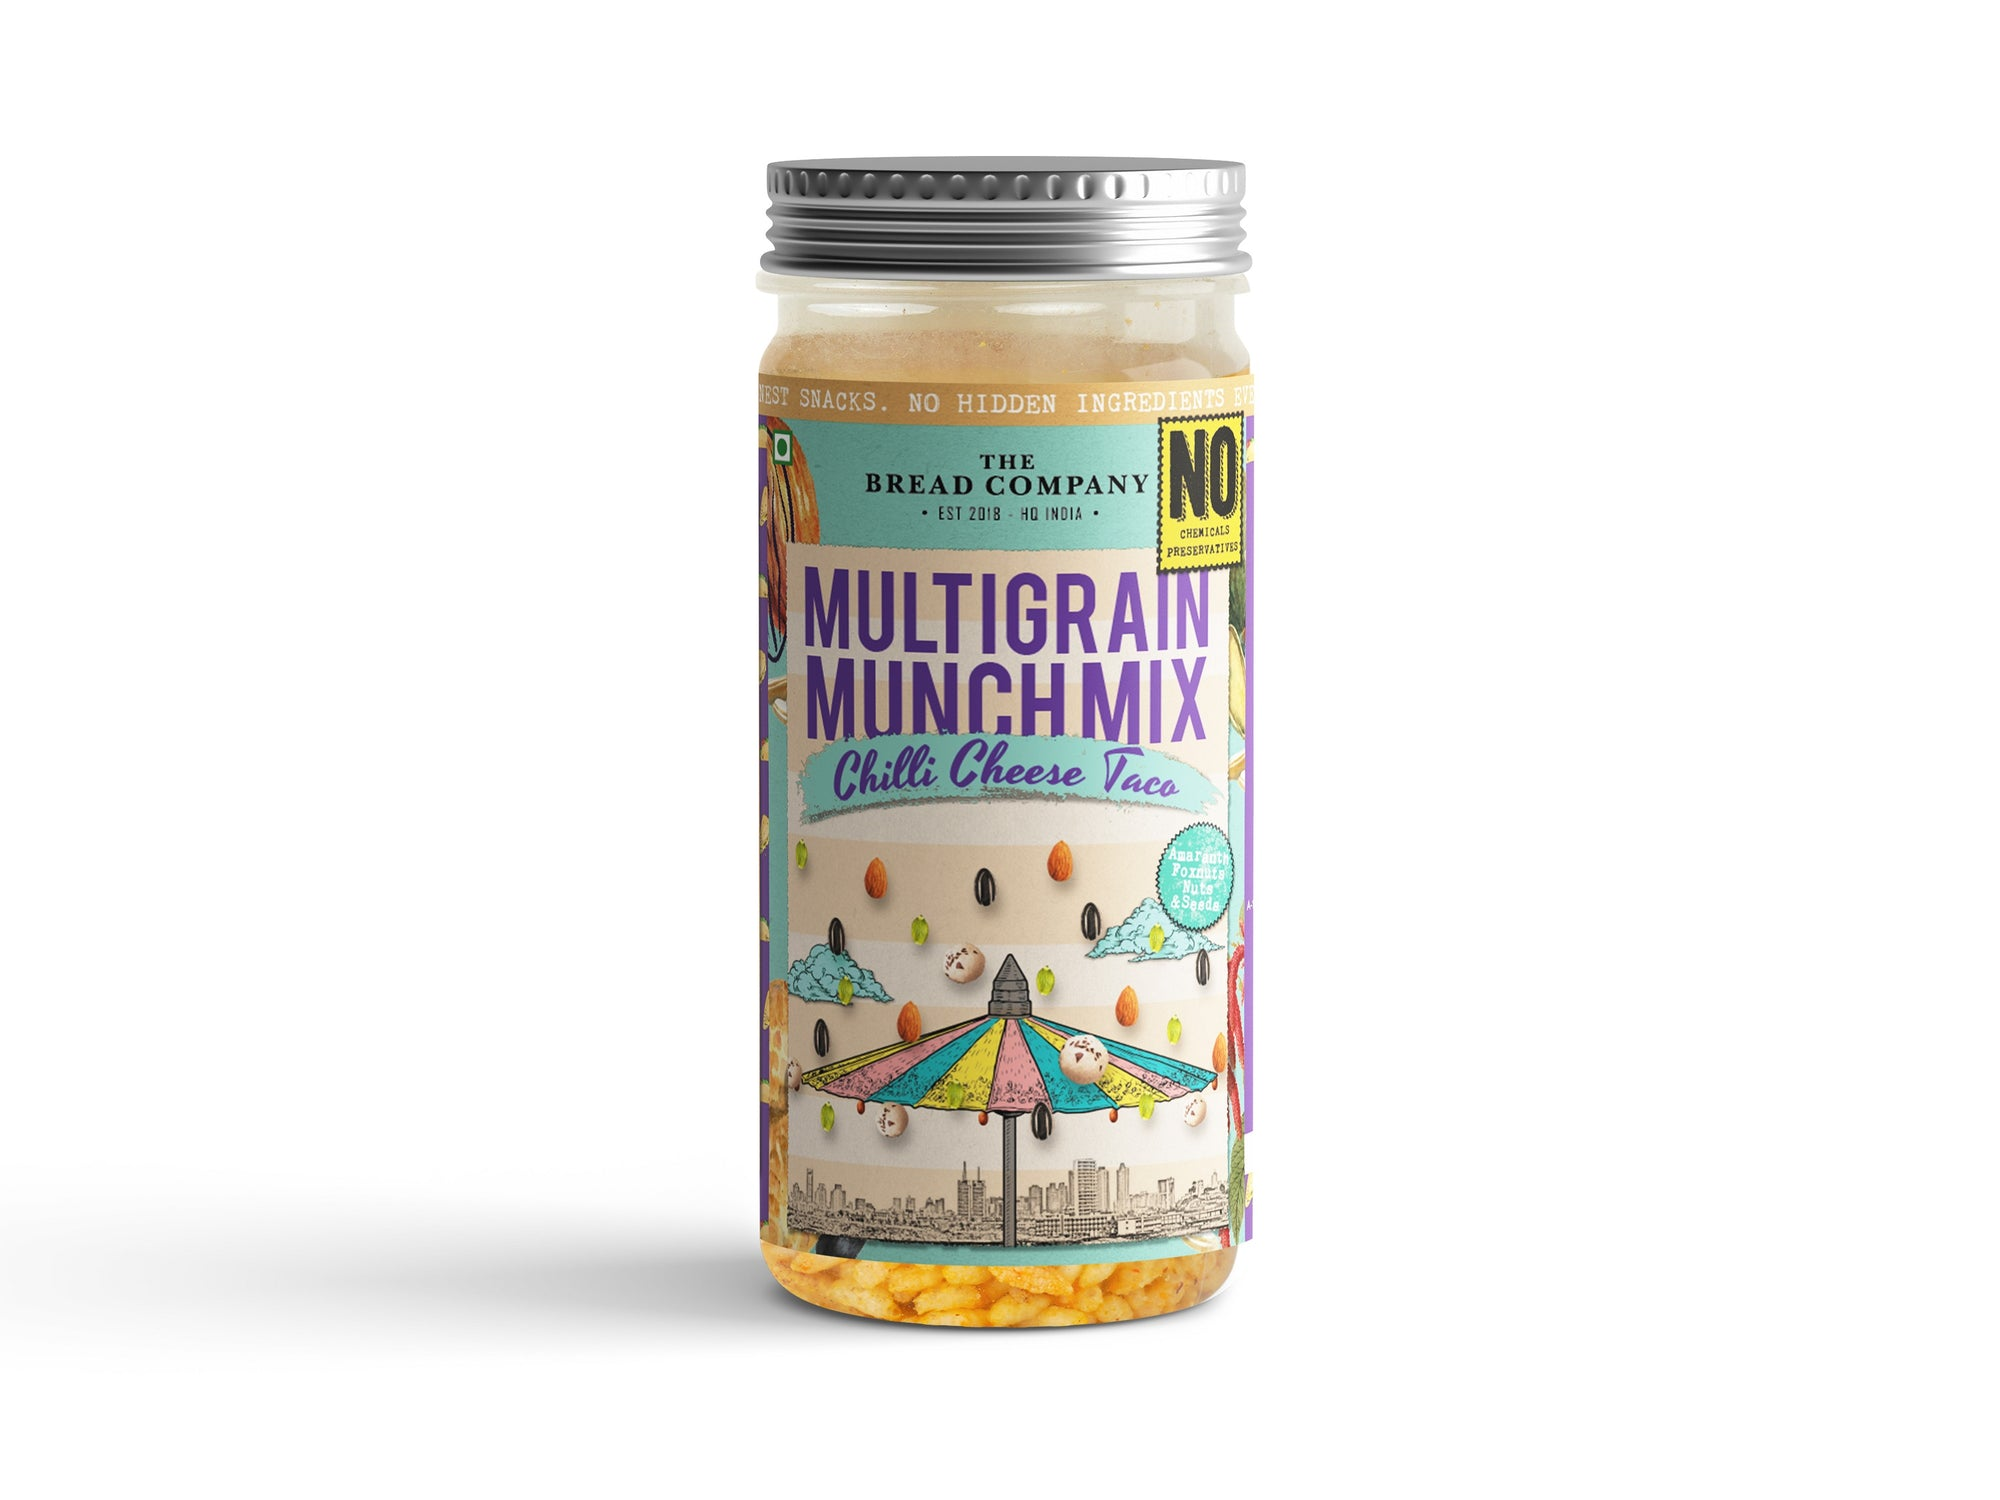 Chilli cheese taco Multigrain Munch mix - 120 gms